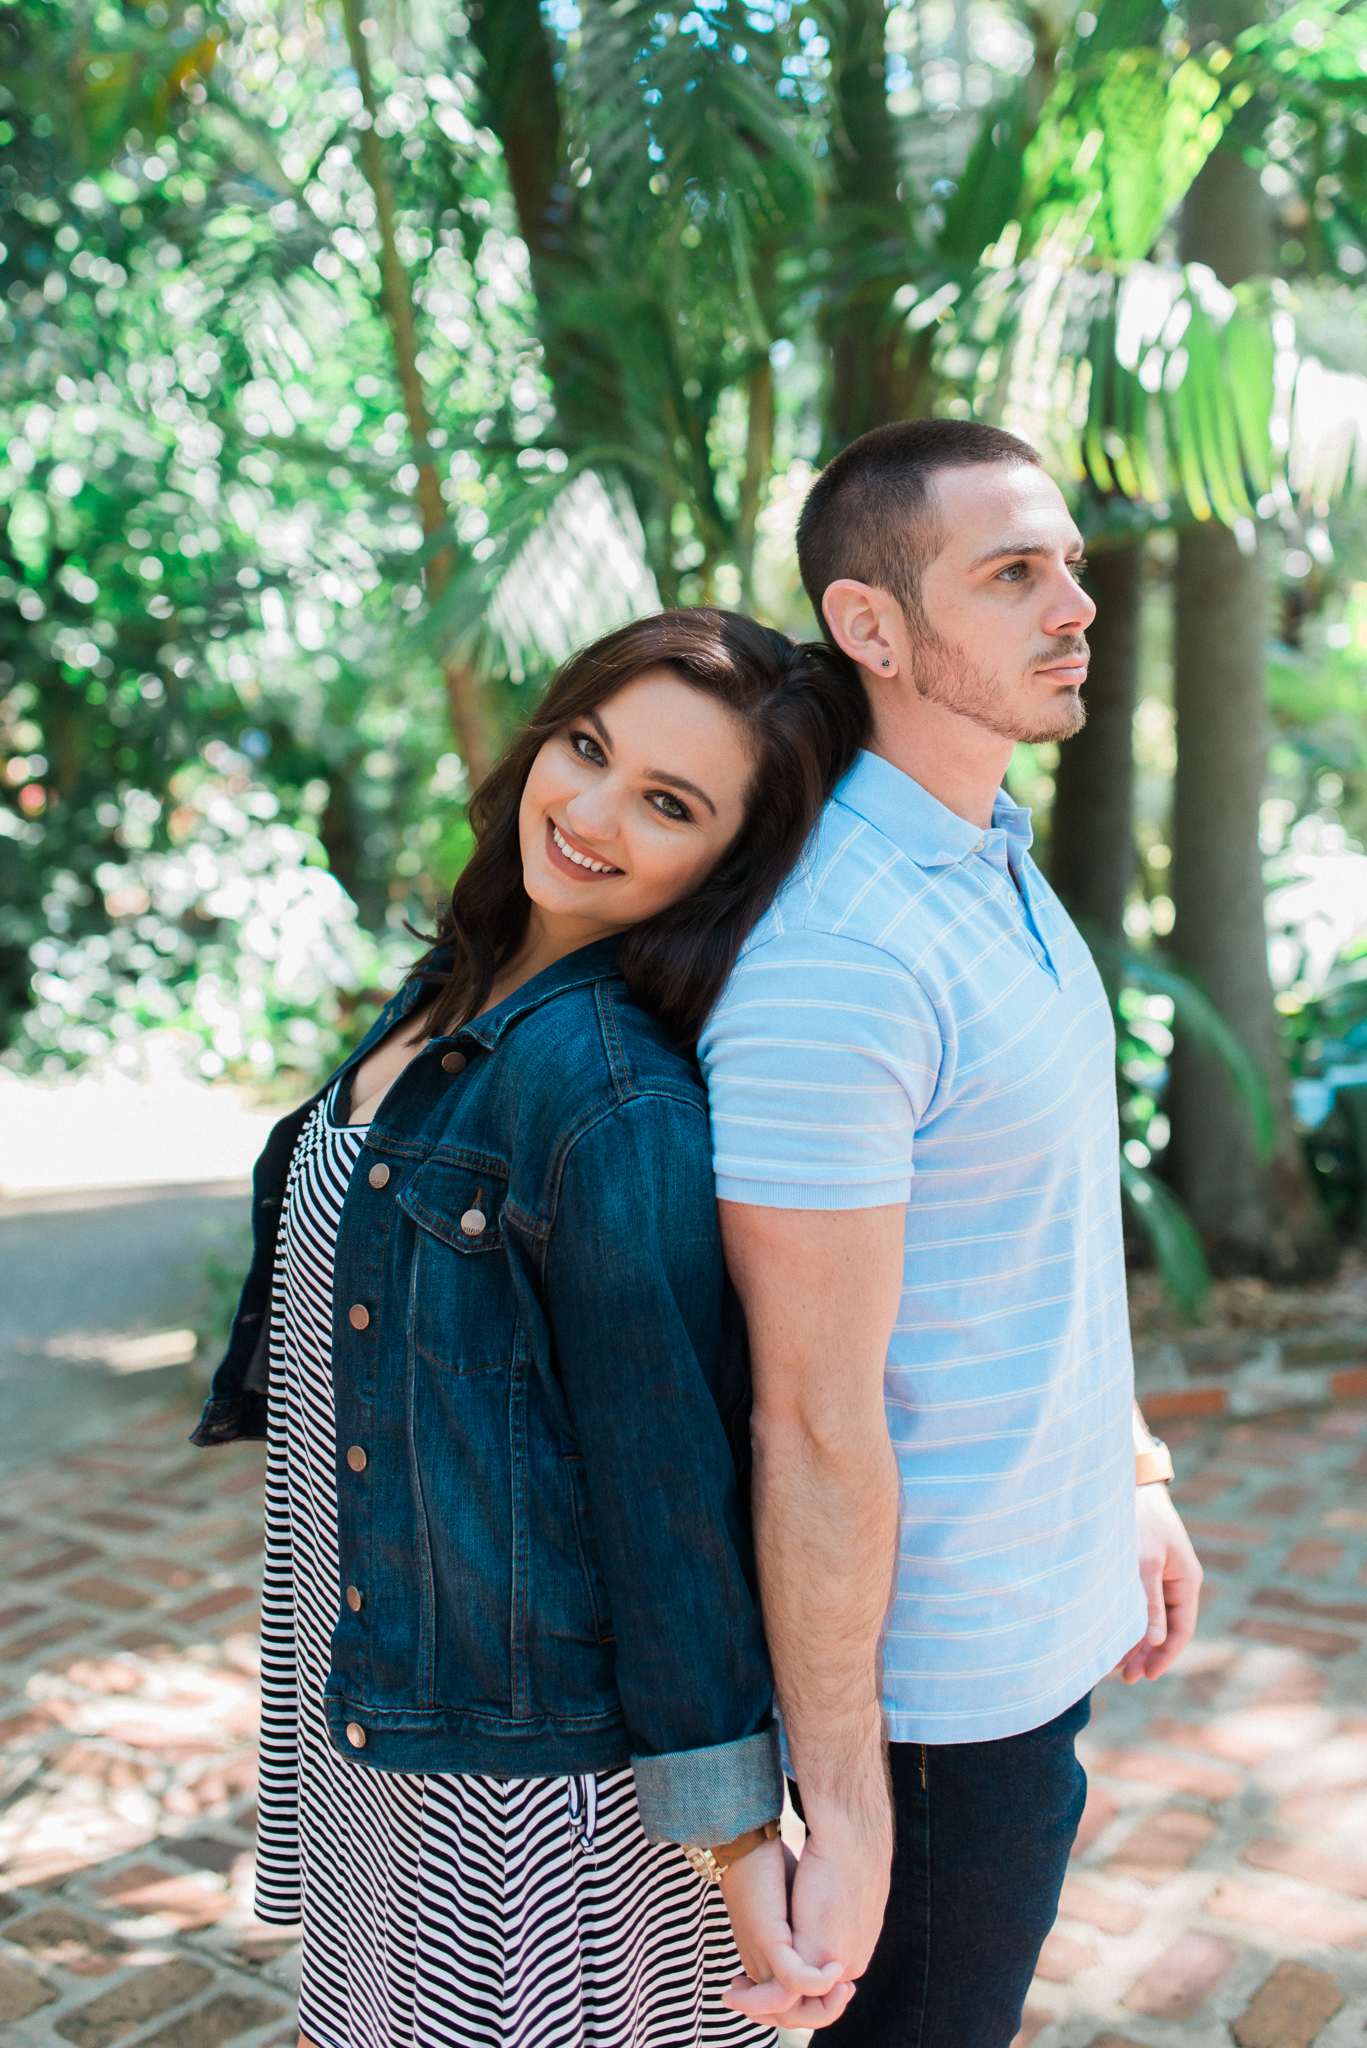 Caitlyn+Mike Engagement Session-WG-31.jpg